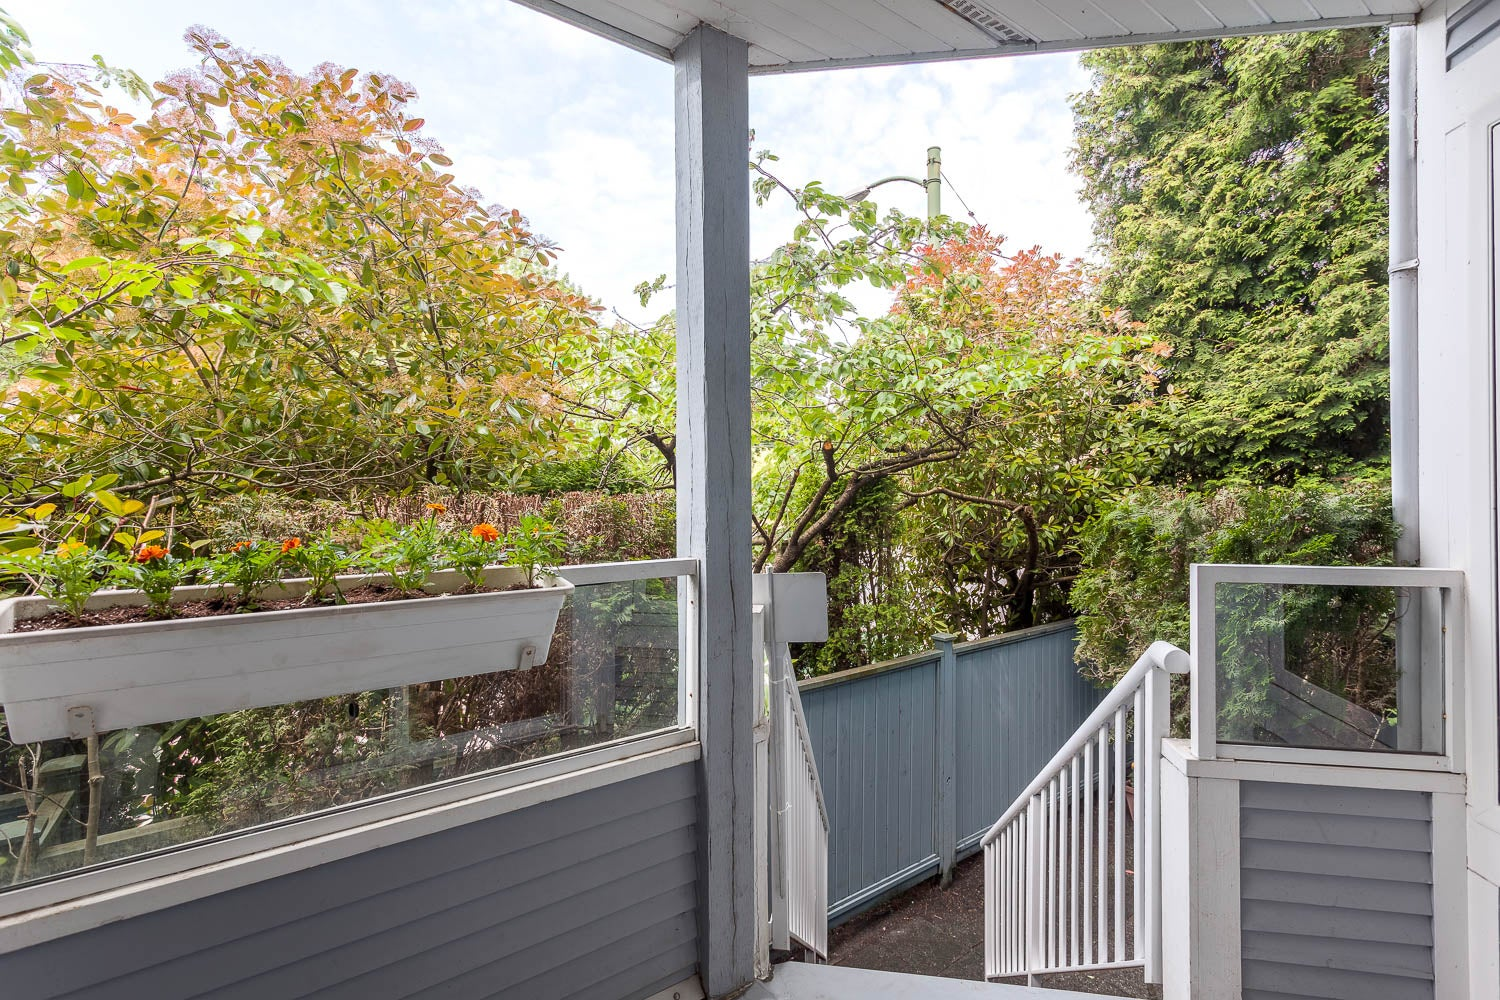 101 4696 W 10TH AVENUE - Point Grey Apartment/Condo for sale, 2 Bedrooms (R2203906) #11